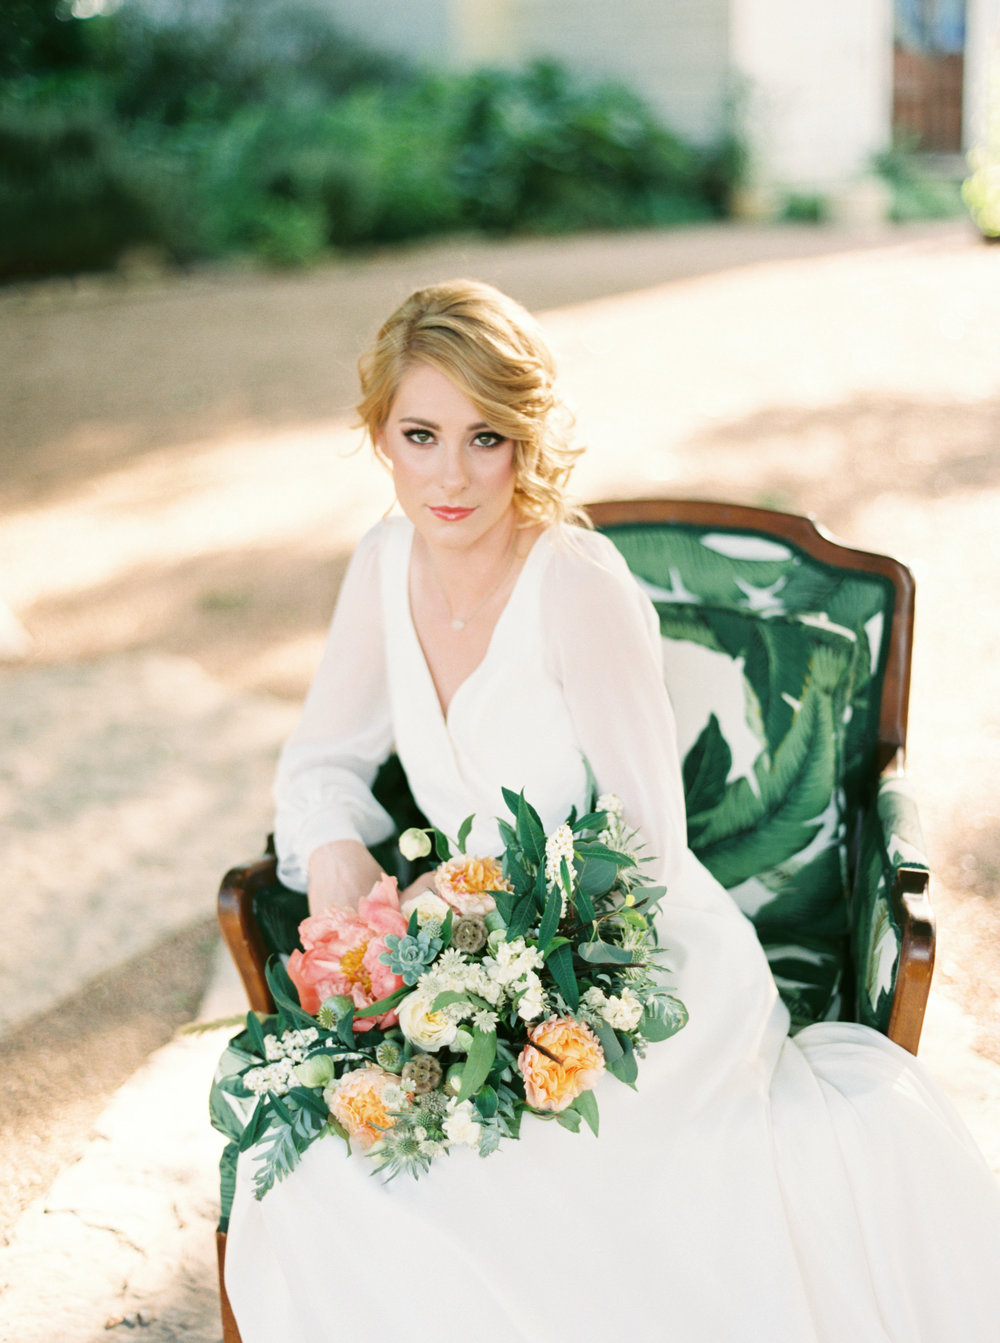 Shalyn-Nelson-photography-ivory-and-beau-bridal-boutique-ivory-and-beau-wedding-planning-barr-mansion-blush-by-hayley-paige-vienna-sweet-magnolia-floral-austin-texas-wedding-savannah-wedding-savannah-bridal-boutique-savannah-weddings-21.jpg